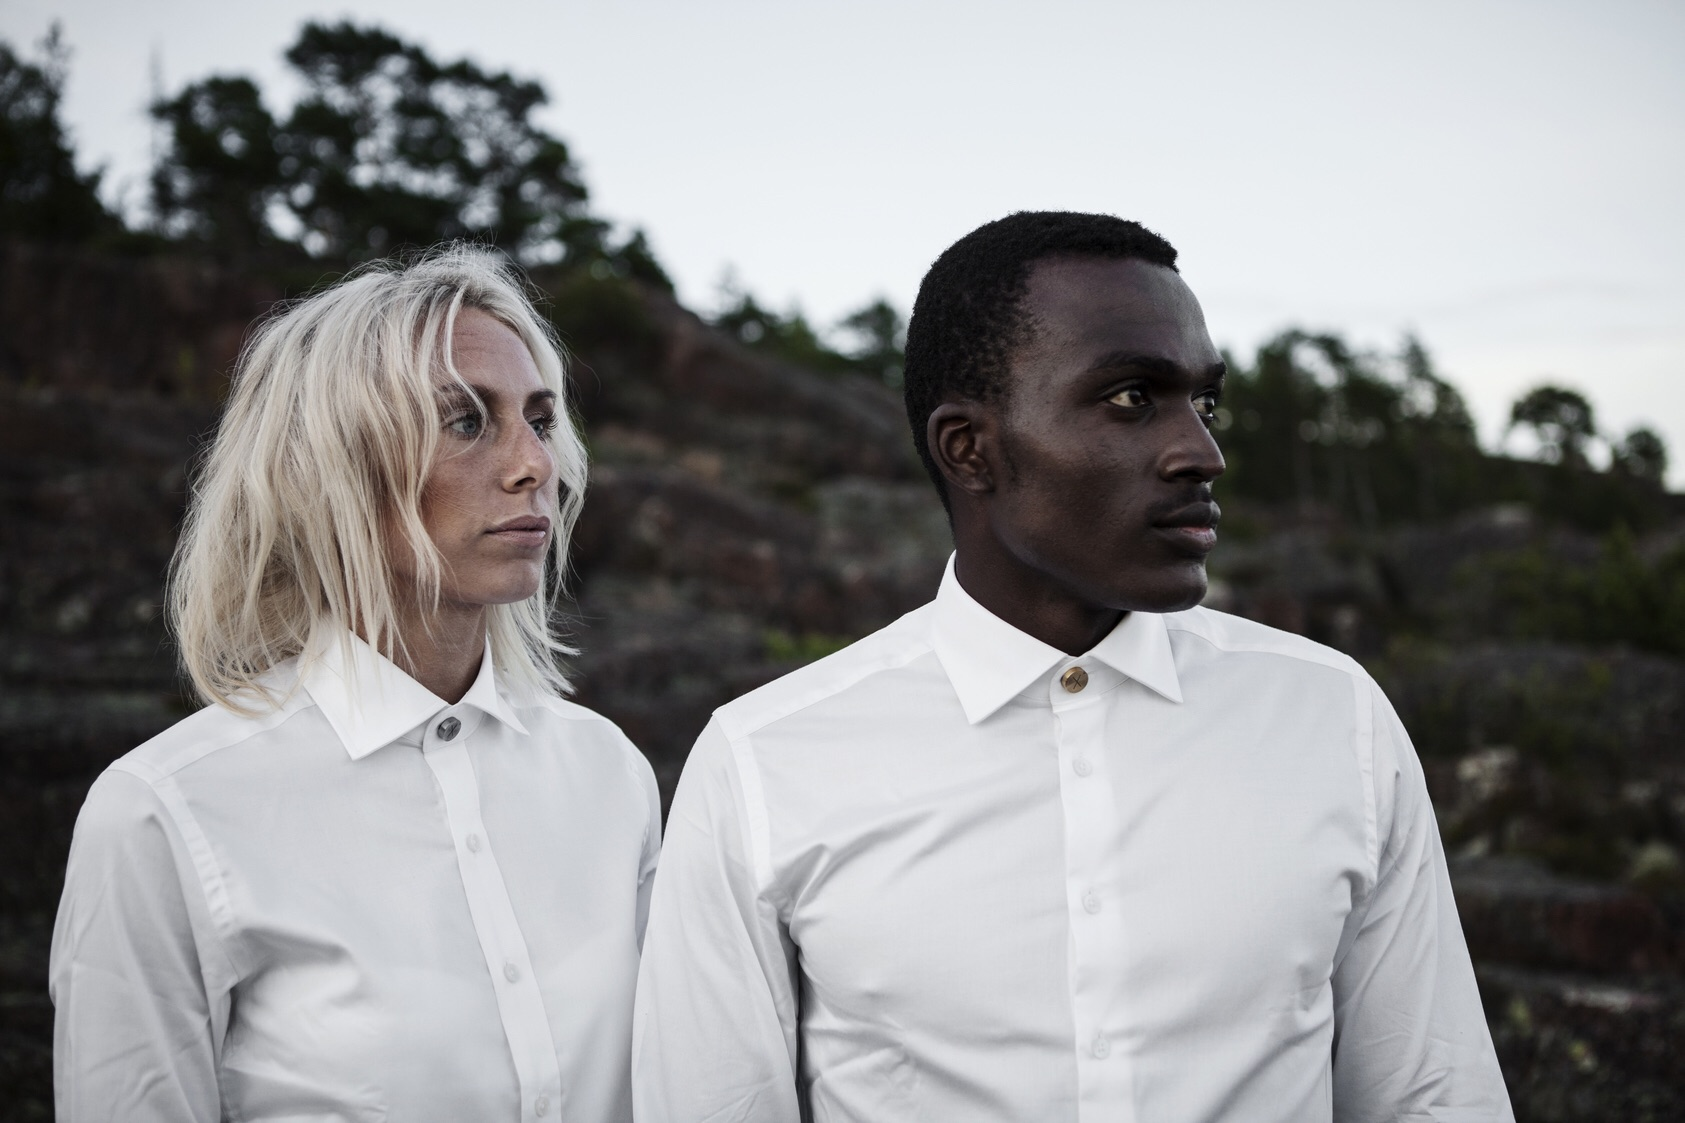 The classic white shirt with Runa of Sweden